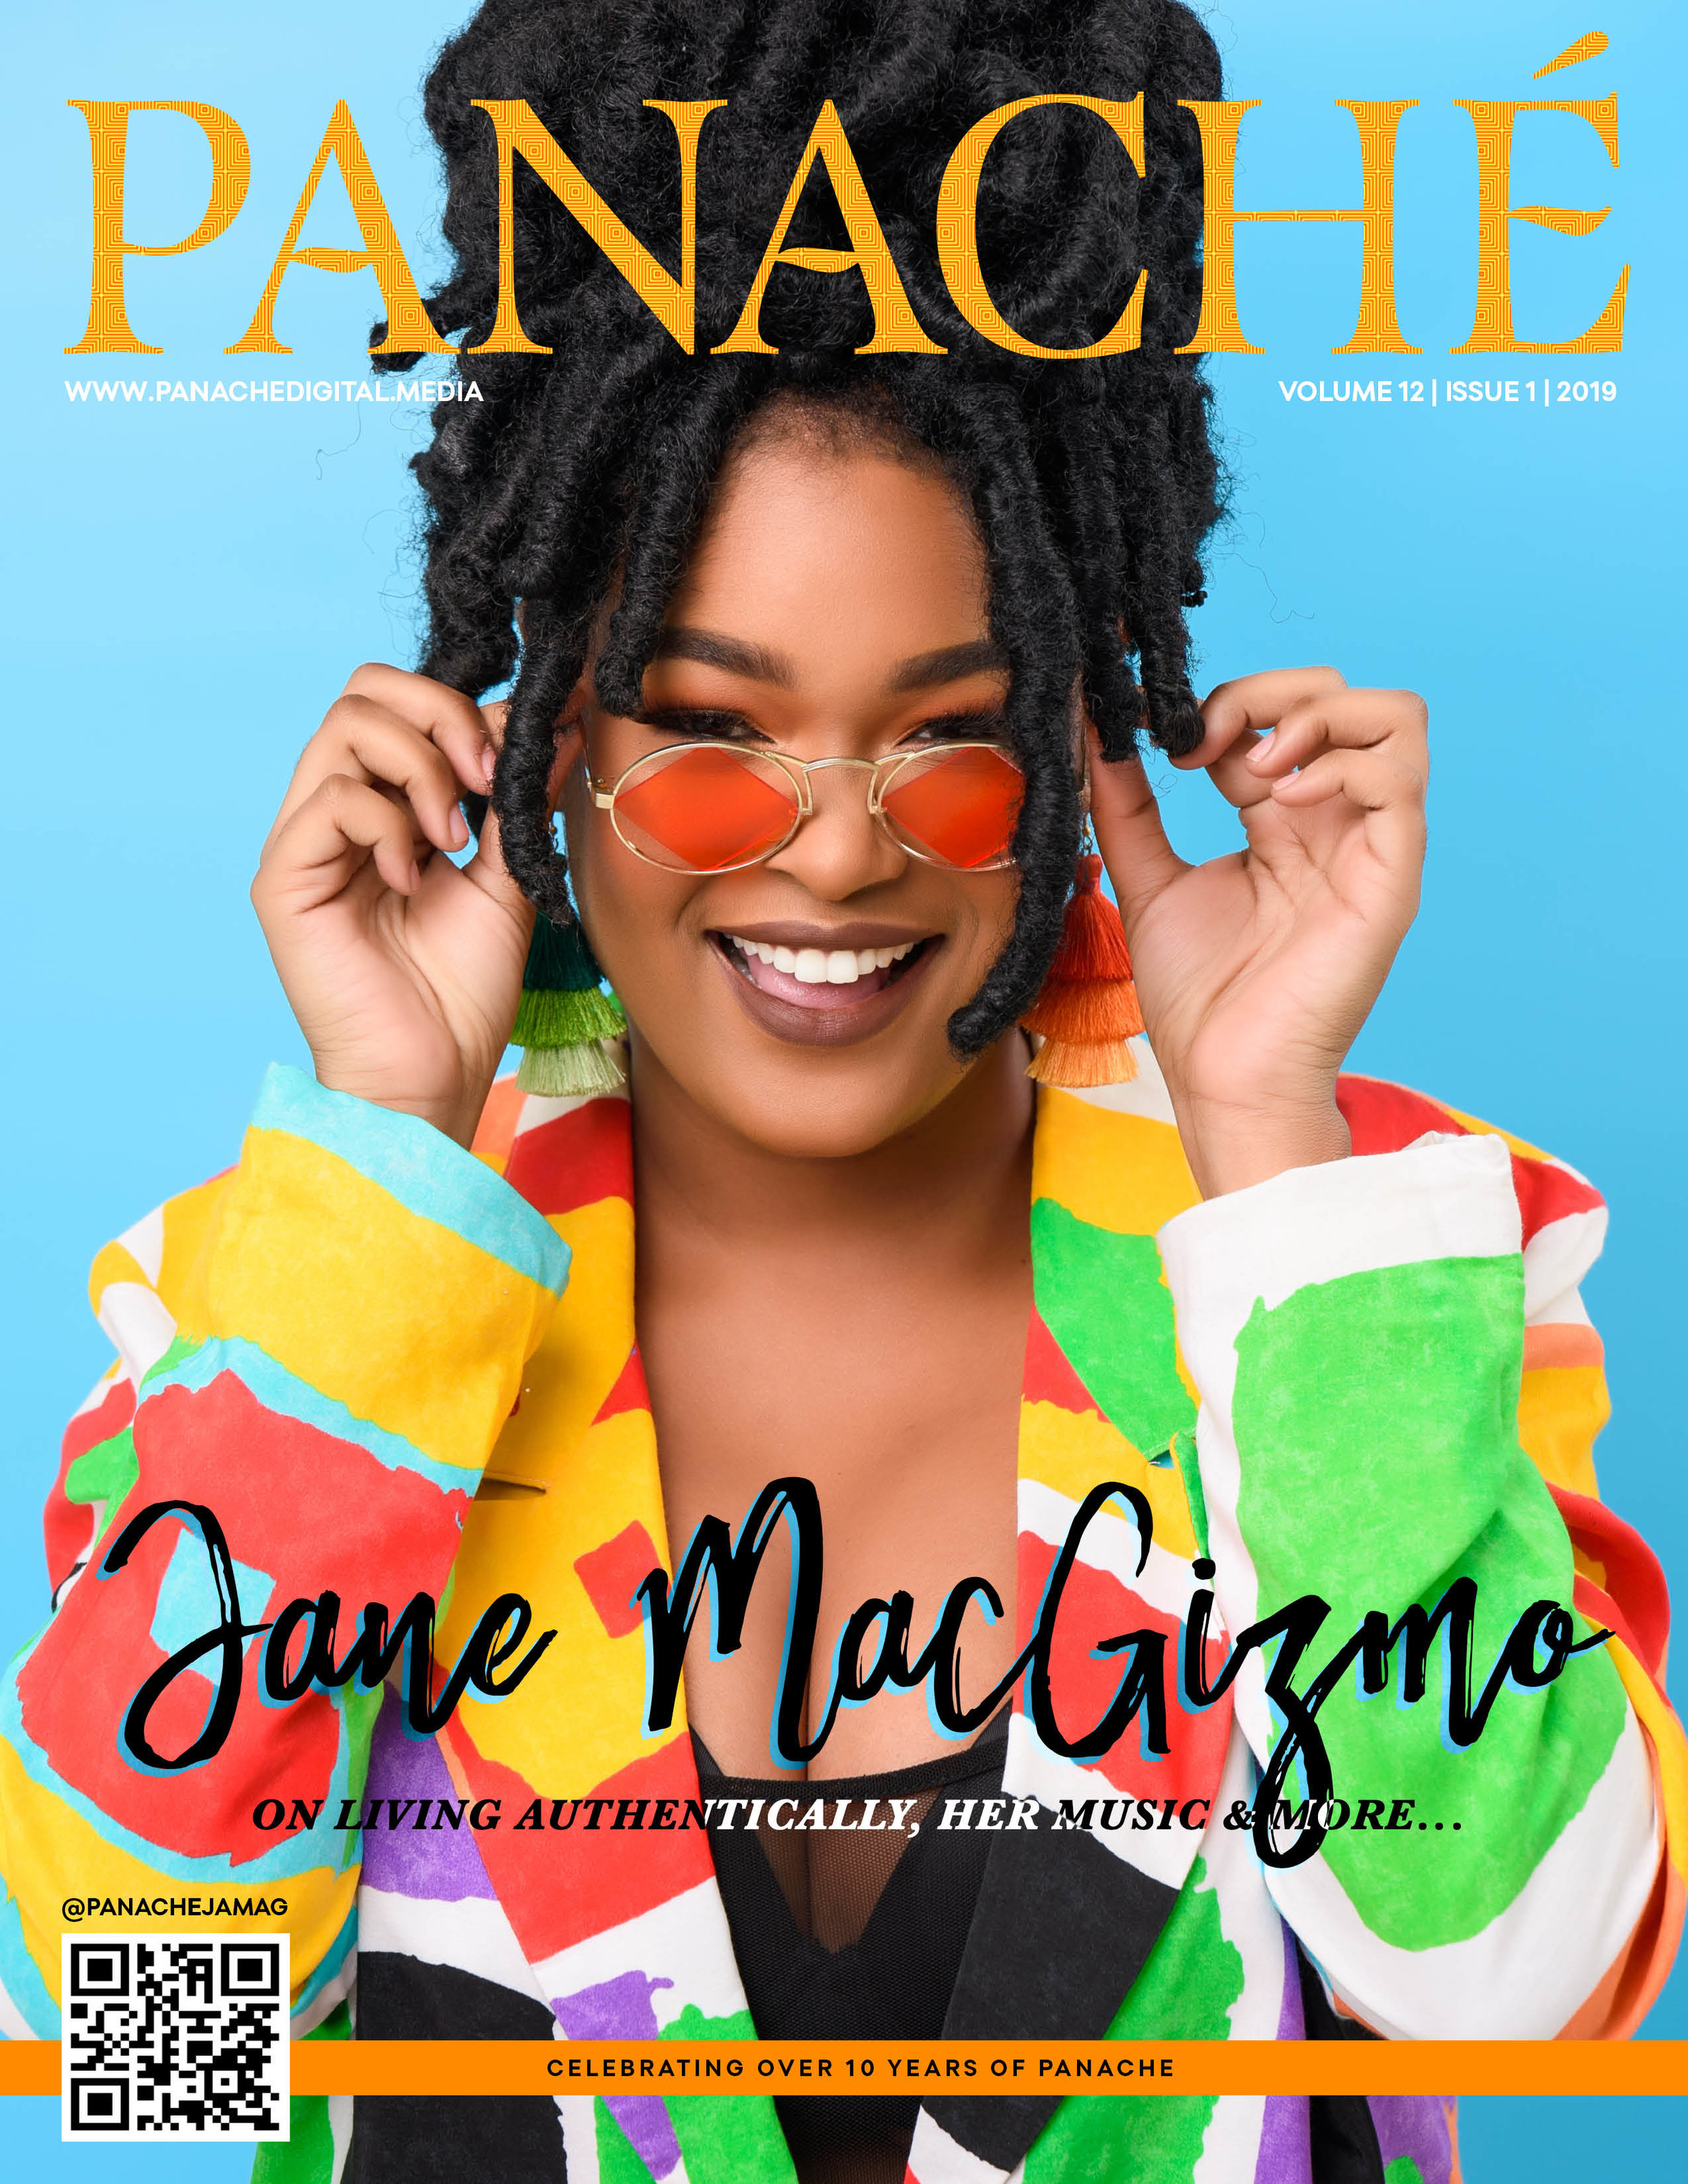 PANACHE Issue 1 2019 - Enjoy our exclusive interview with Jane MacGizmo and so much more!